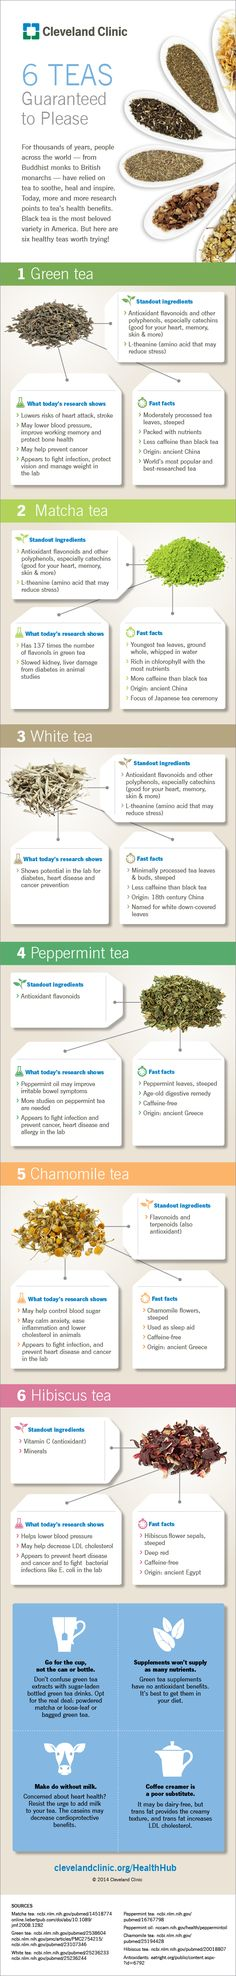 It's National Hot Tea Month. You can't go wrong with these 6 types of tea, which come recommended and explained by the Cleveland Clinic. Tea Benefits, Health Benefits, Health And Nutrition, Health Tips, Holistic Nutrition, Tea Facts, Cleveland Clinic, Types Of Tea, Tea Blends